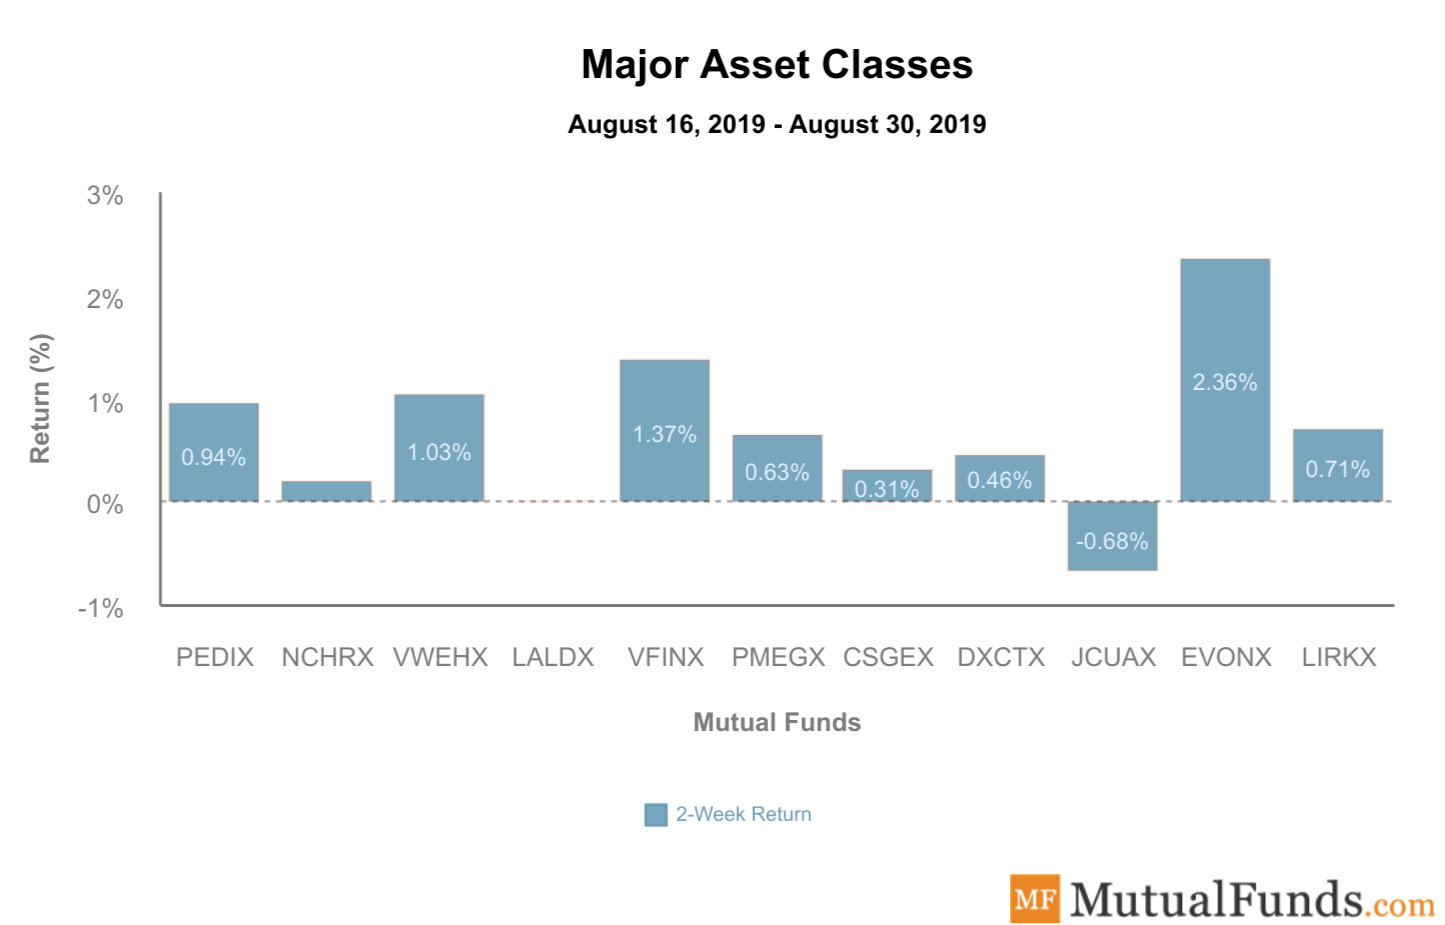 Major Asset Classes Sep 3 2019